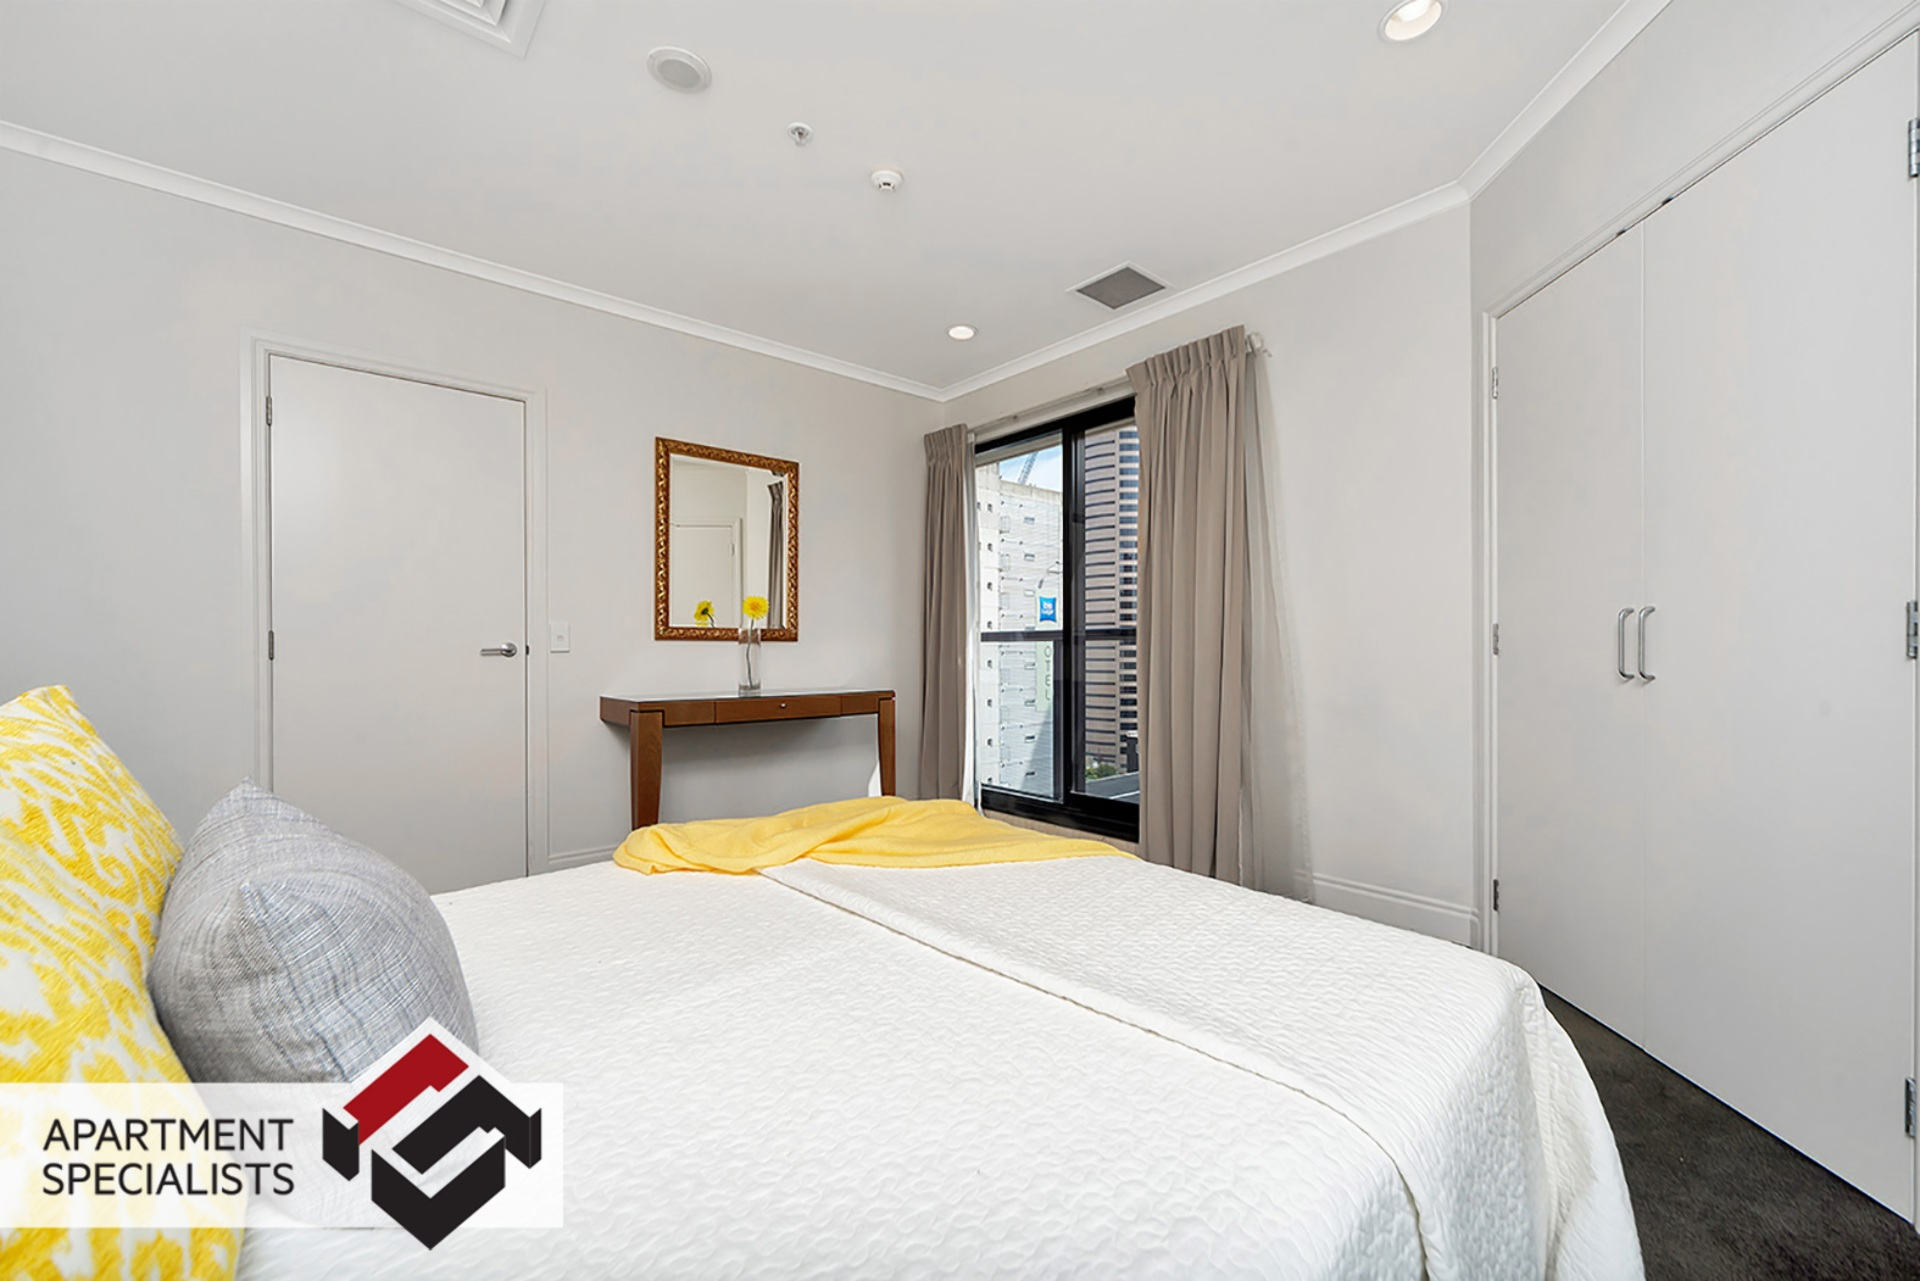 6 | 171 CBD, City Centre | Apartment Specialists